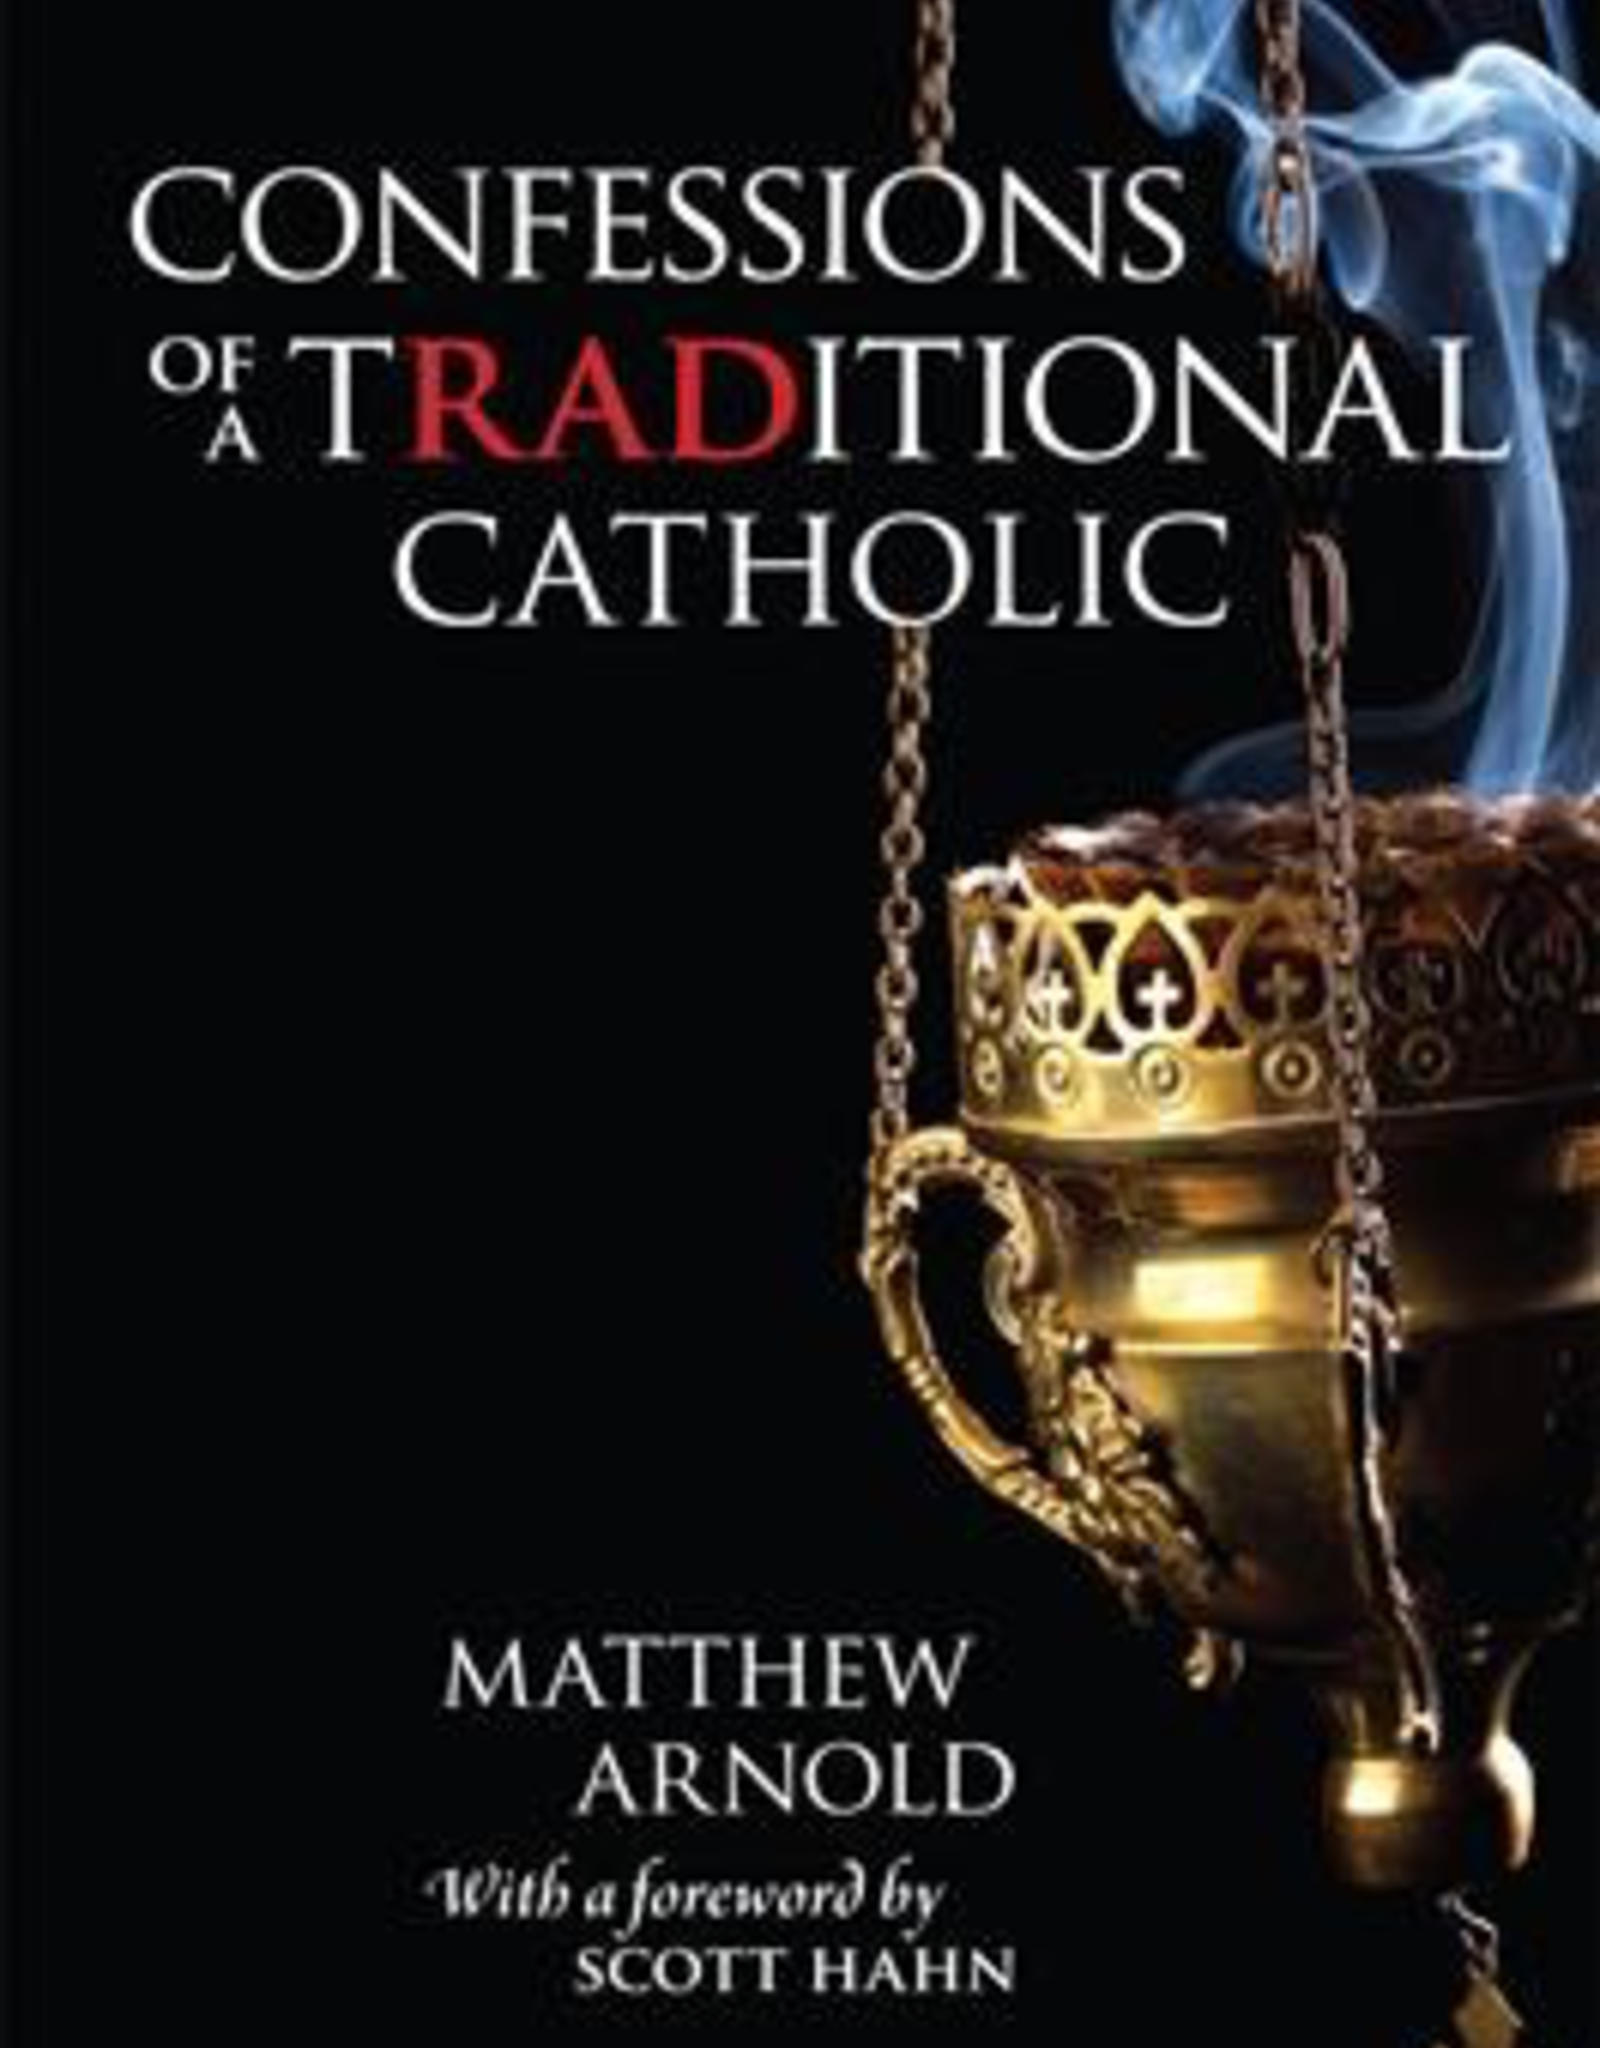 Ignatius Press Confessions of a Traditional Catholic, by Matthew Arnold (paperback)